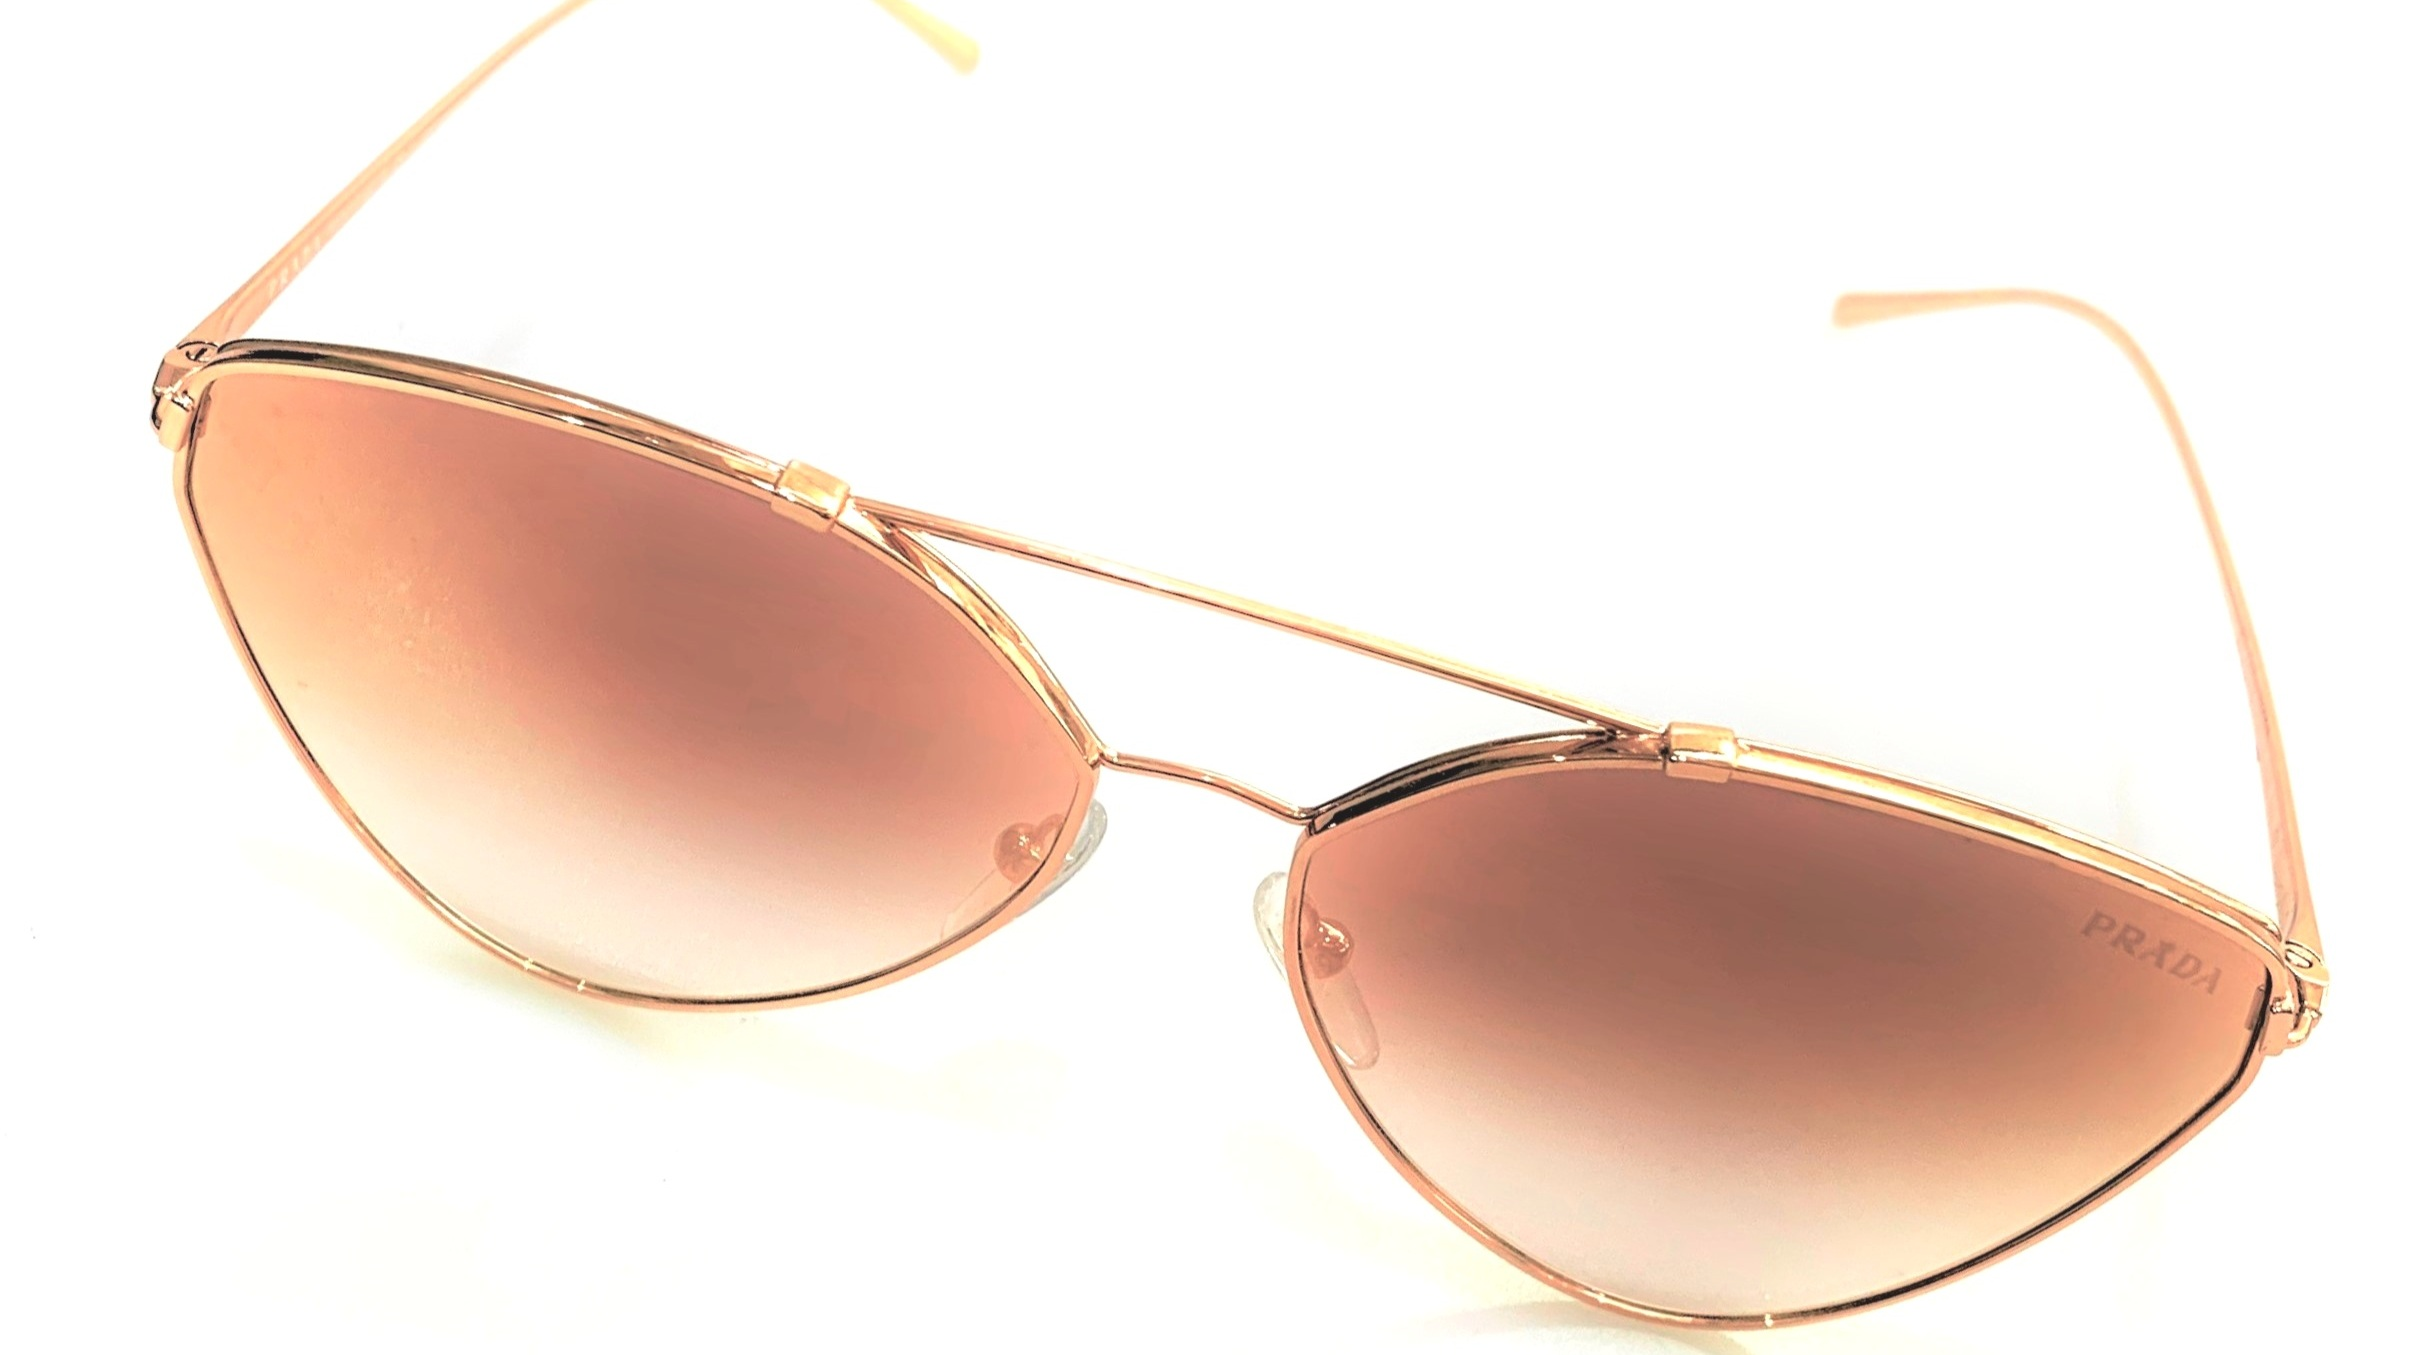 Perfect in Prada - These rose gold Prada mirrored sunglasses are perfect for those who want to add a feminine touch to their festival outfit.